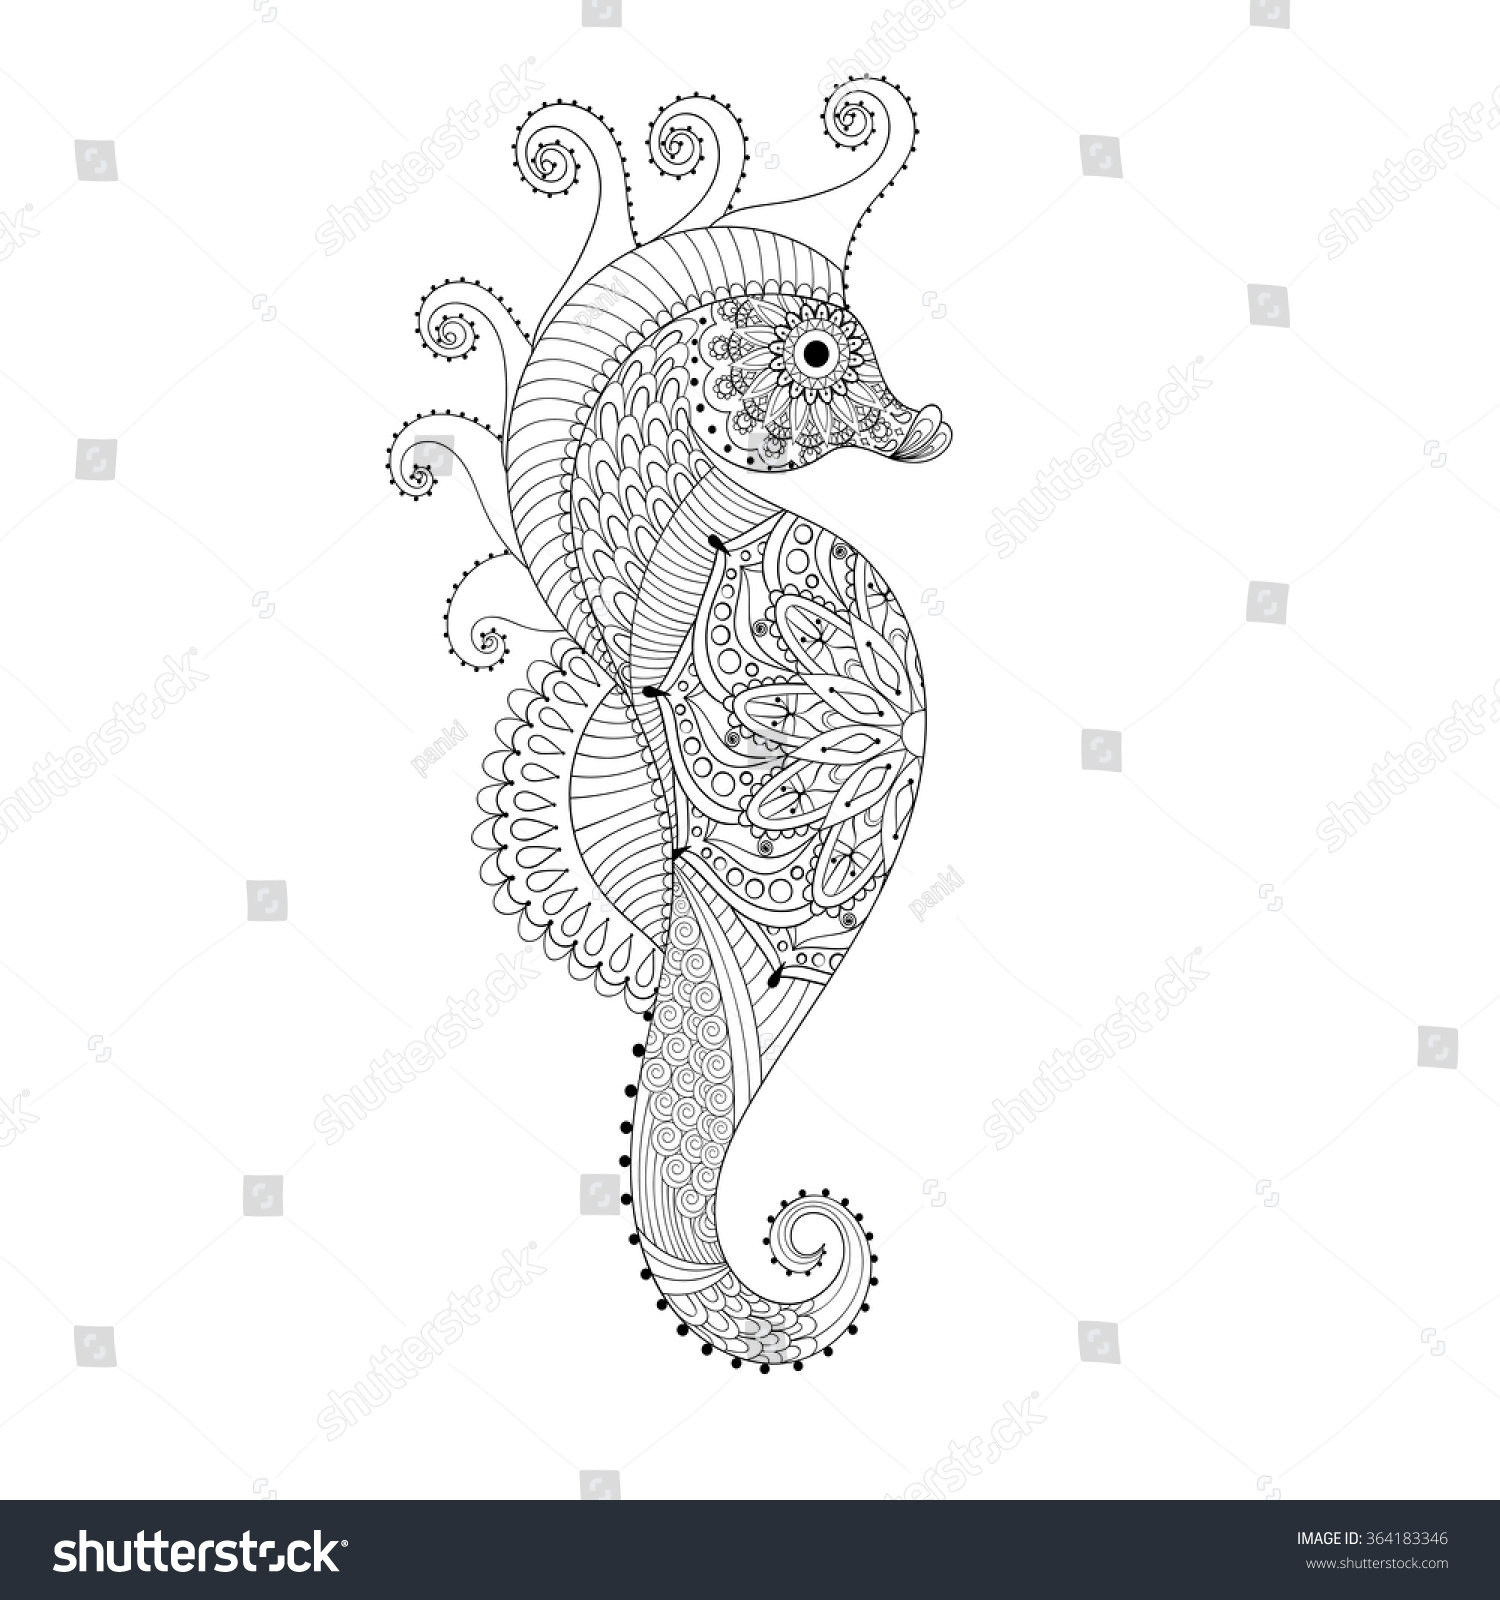 Zen colouring book animals - Sea Horse Hand Drawn Sea Horse Adult Coloring Pages Doodle Zentangle Sea